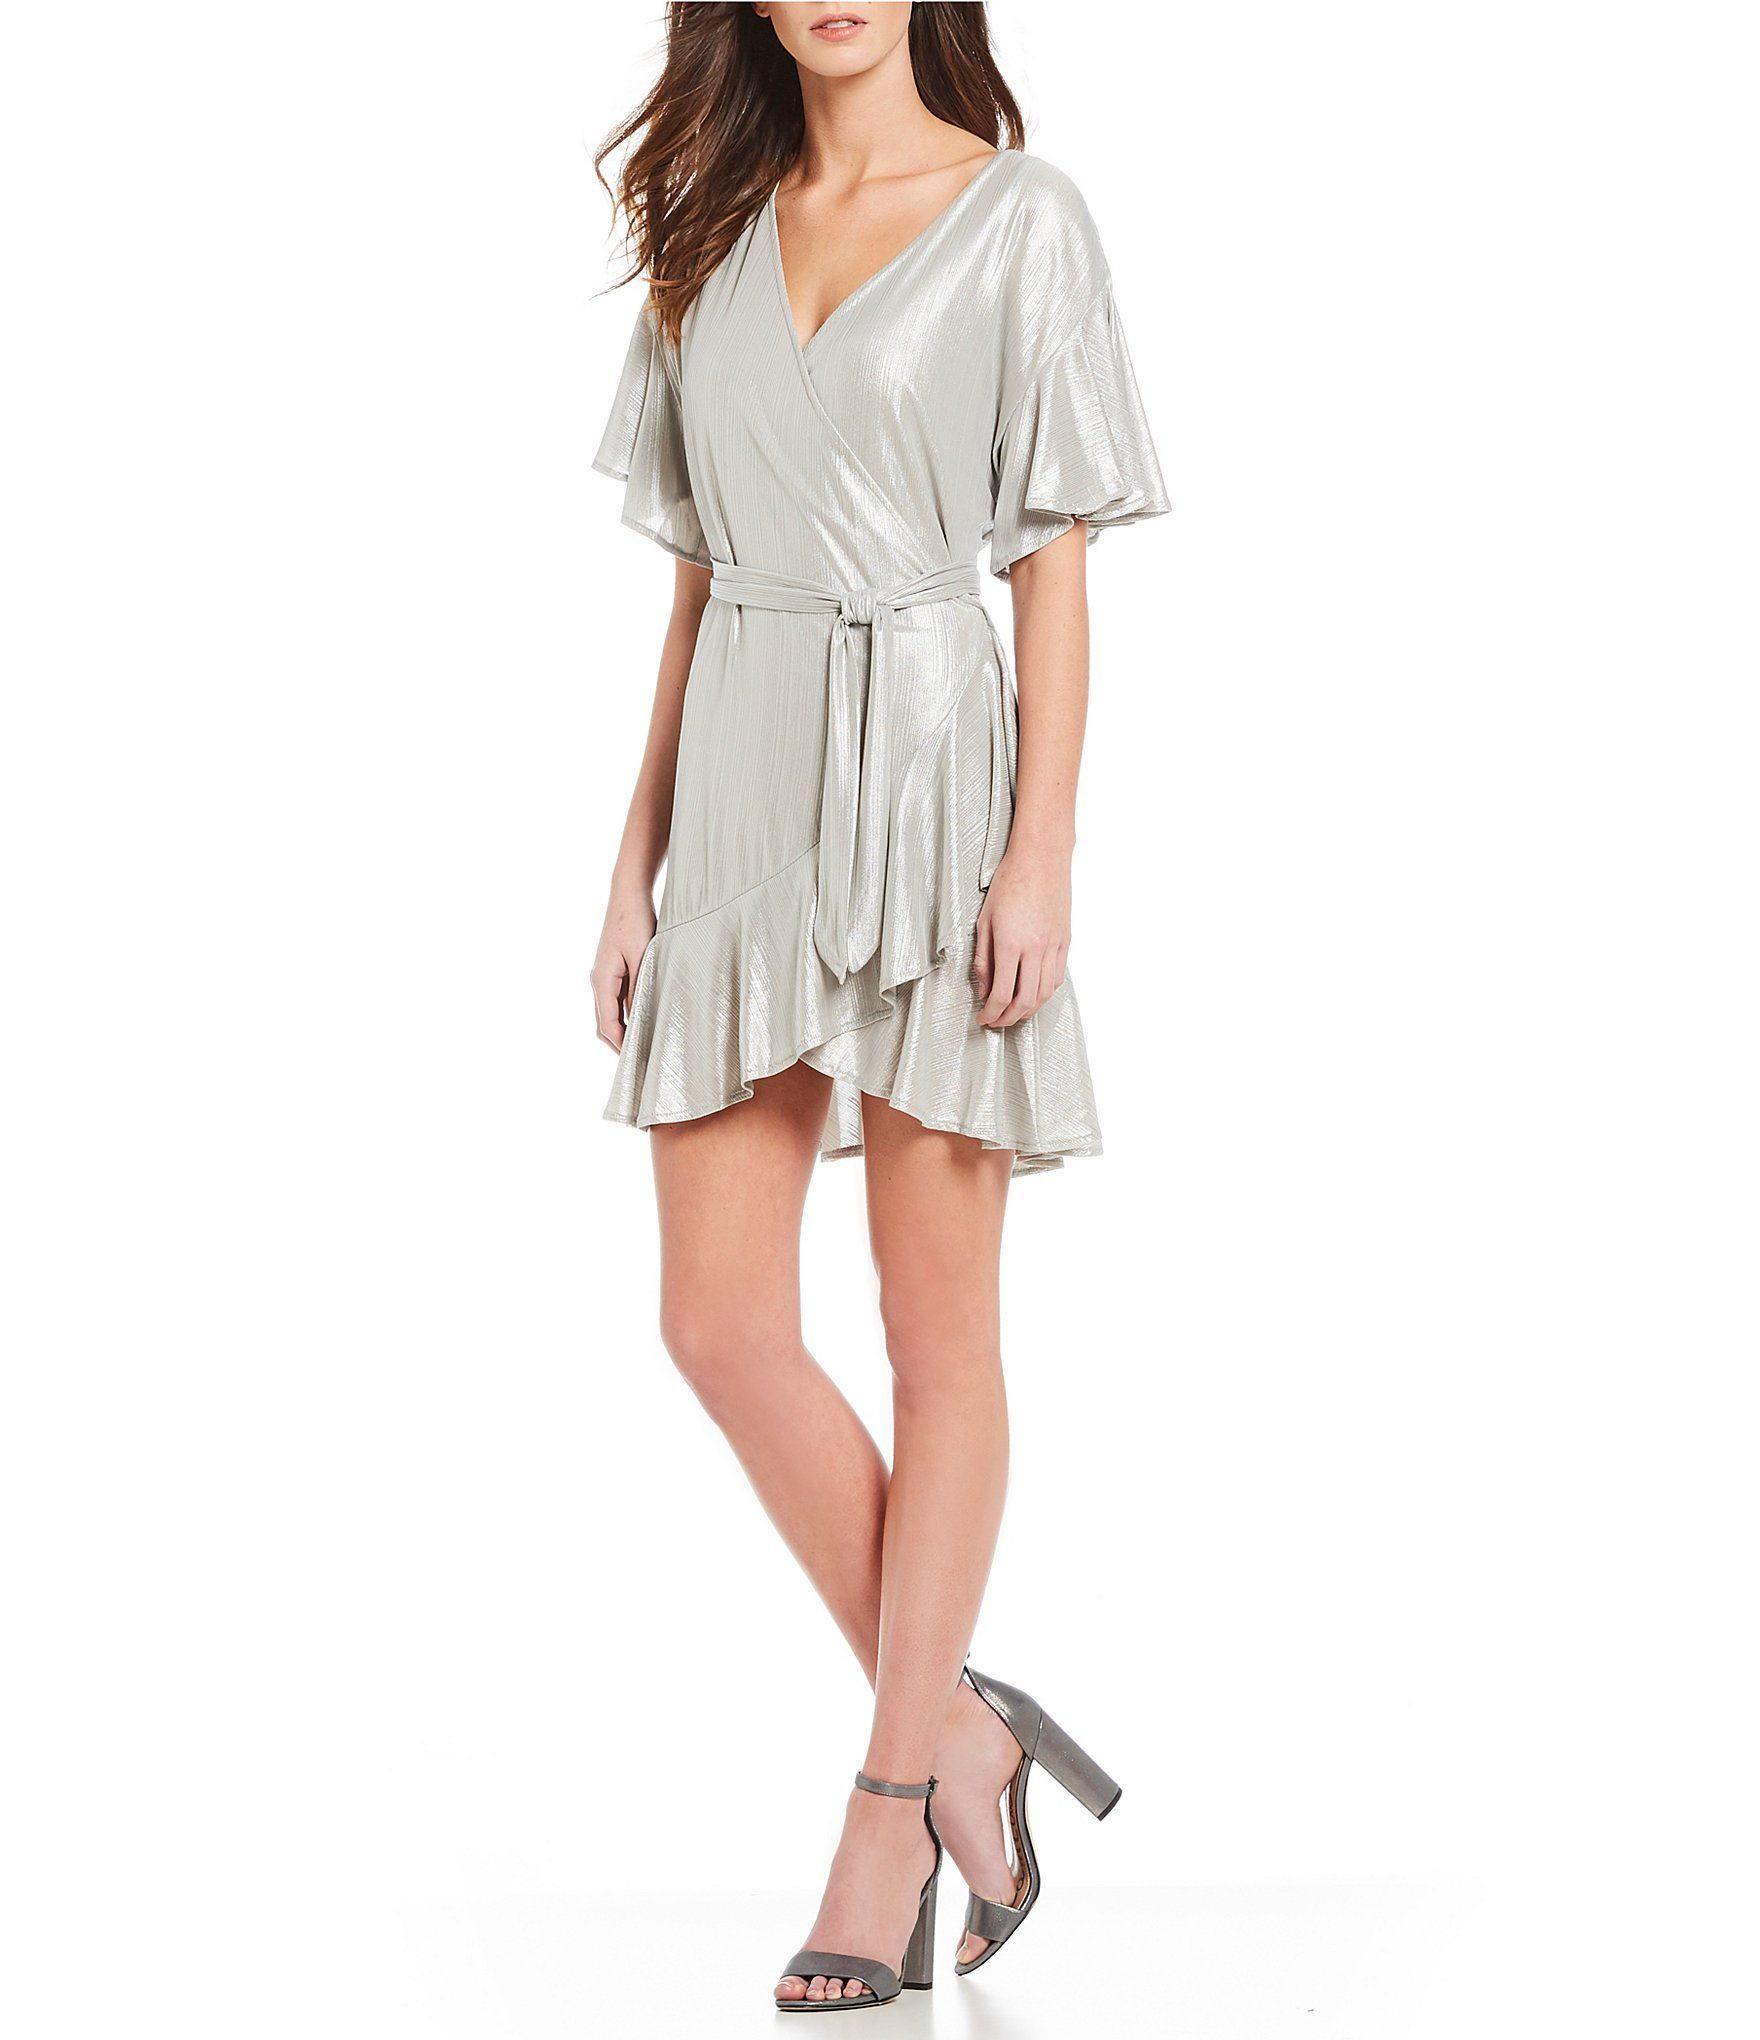 14ec2b16dcd Shop for BB Dakota Moon Dance Metallic Wrap Dress at Dillards.com. Visit  Dillards